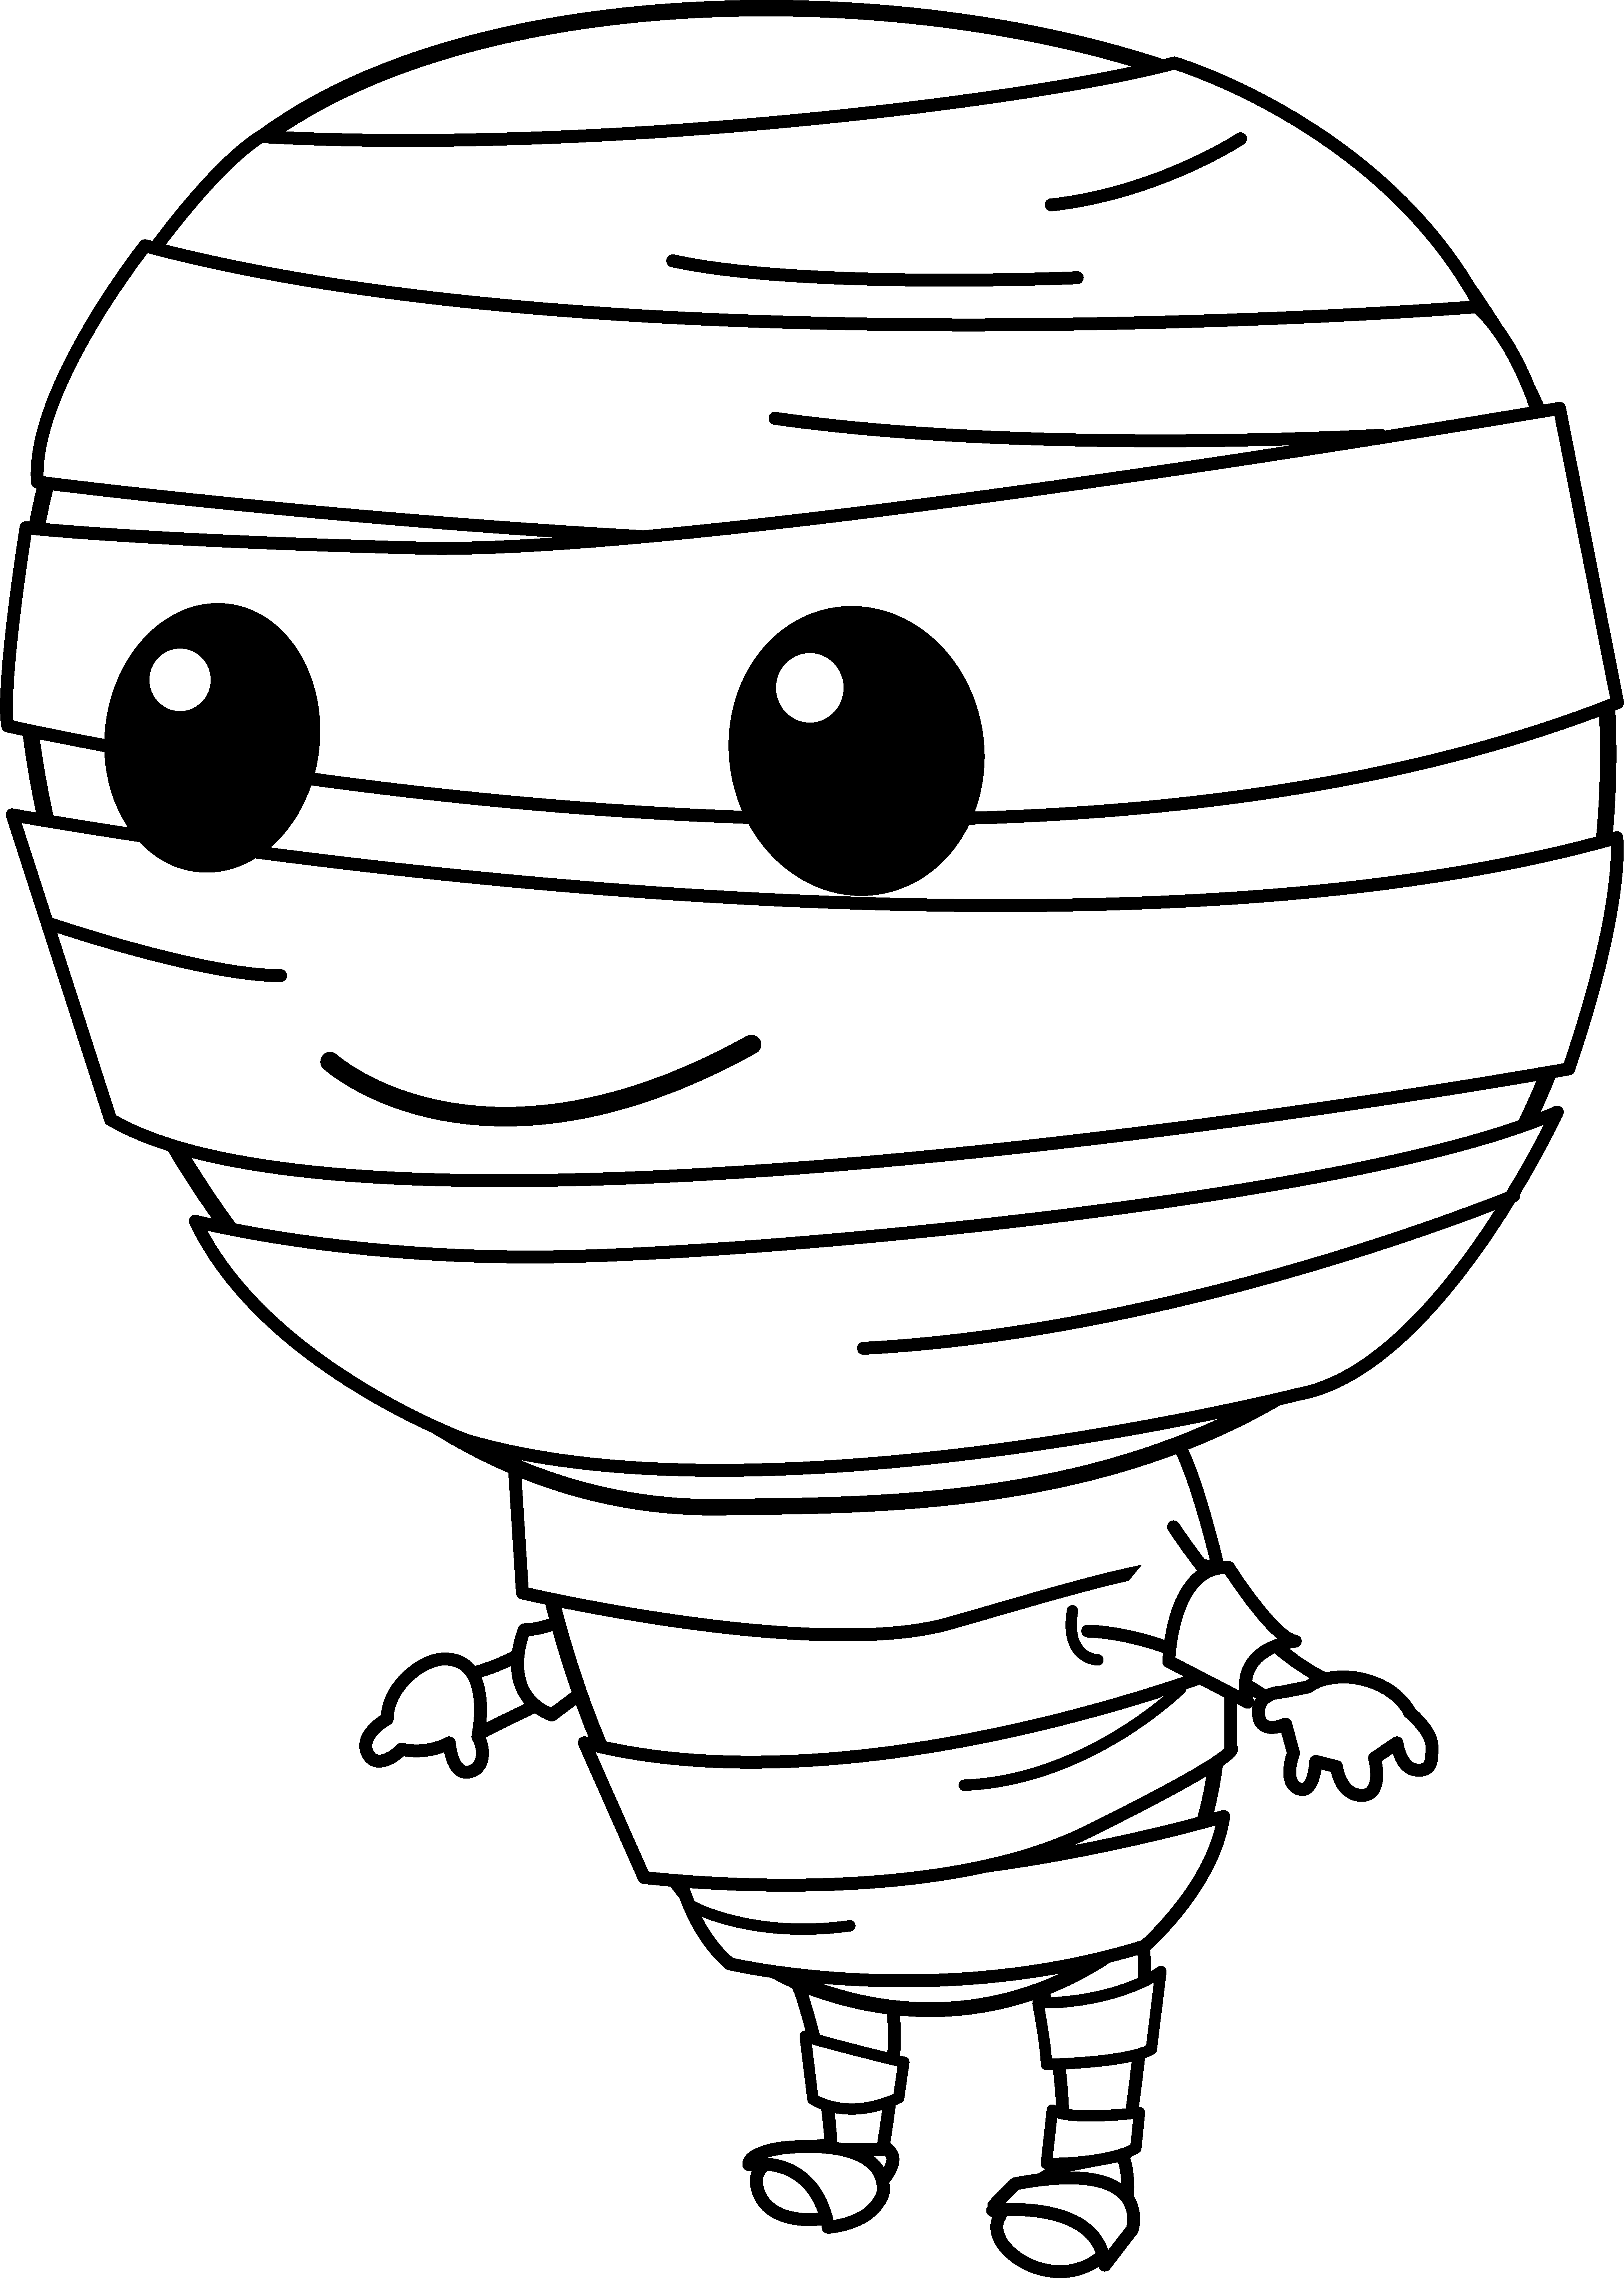 Mummy transparent small. Free cliparts download clip